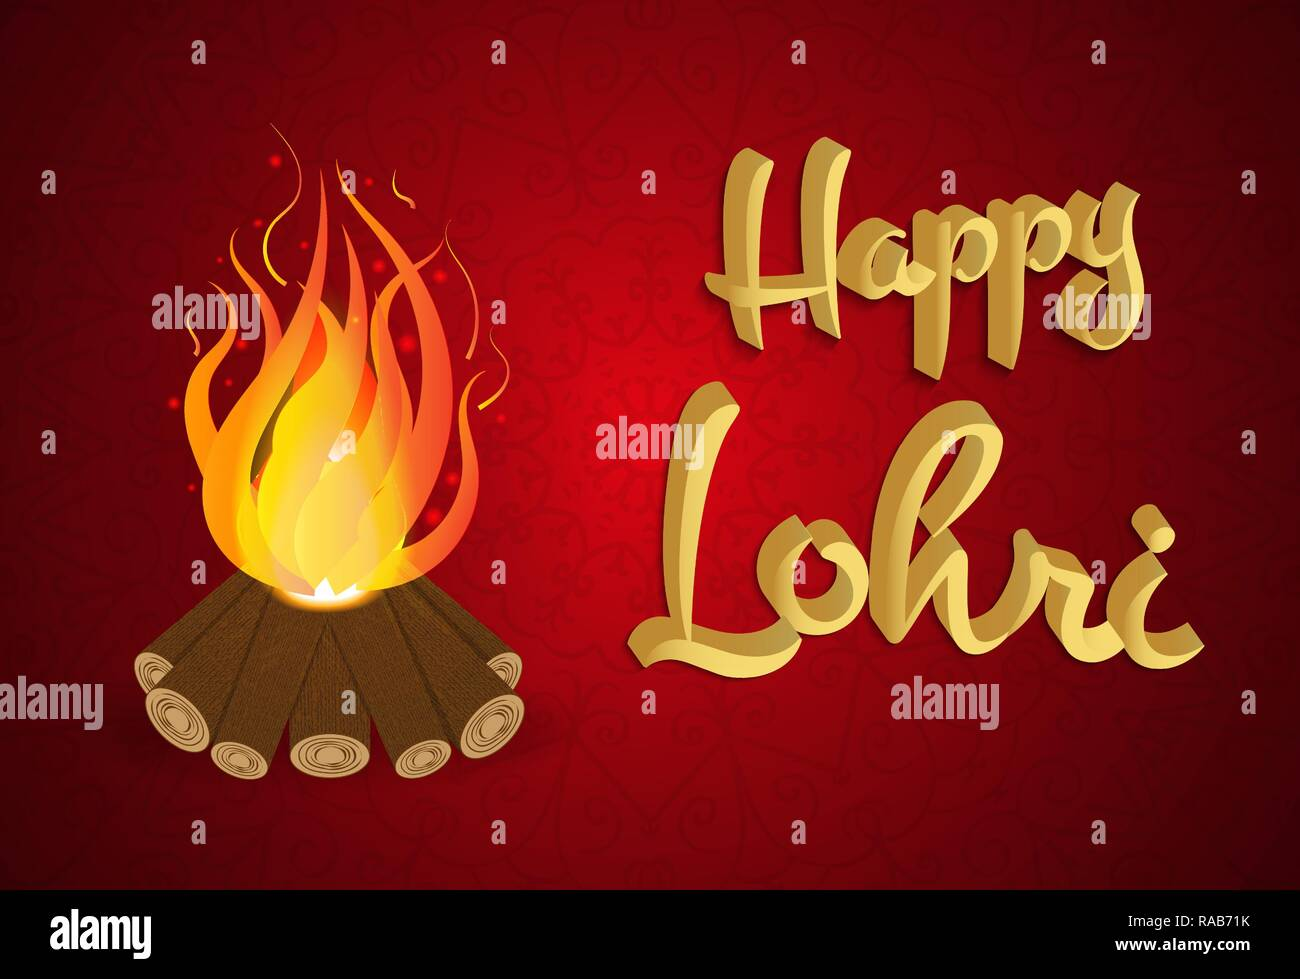 Happy Lohri background with bonfire, holiday vector illustration on red background - Stock Vector